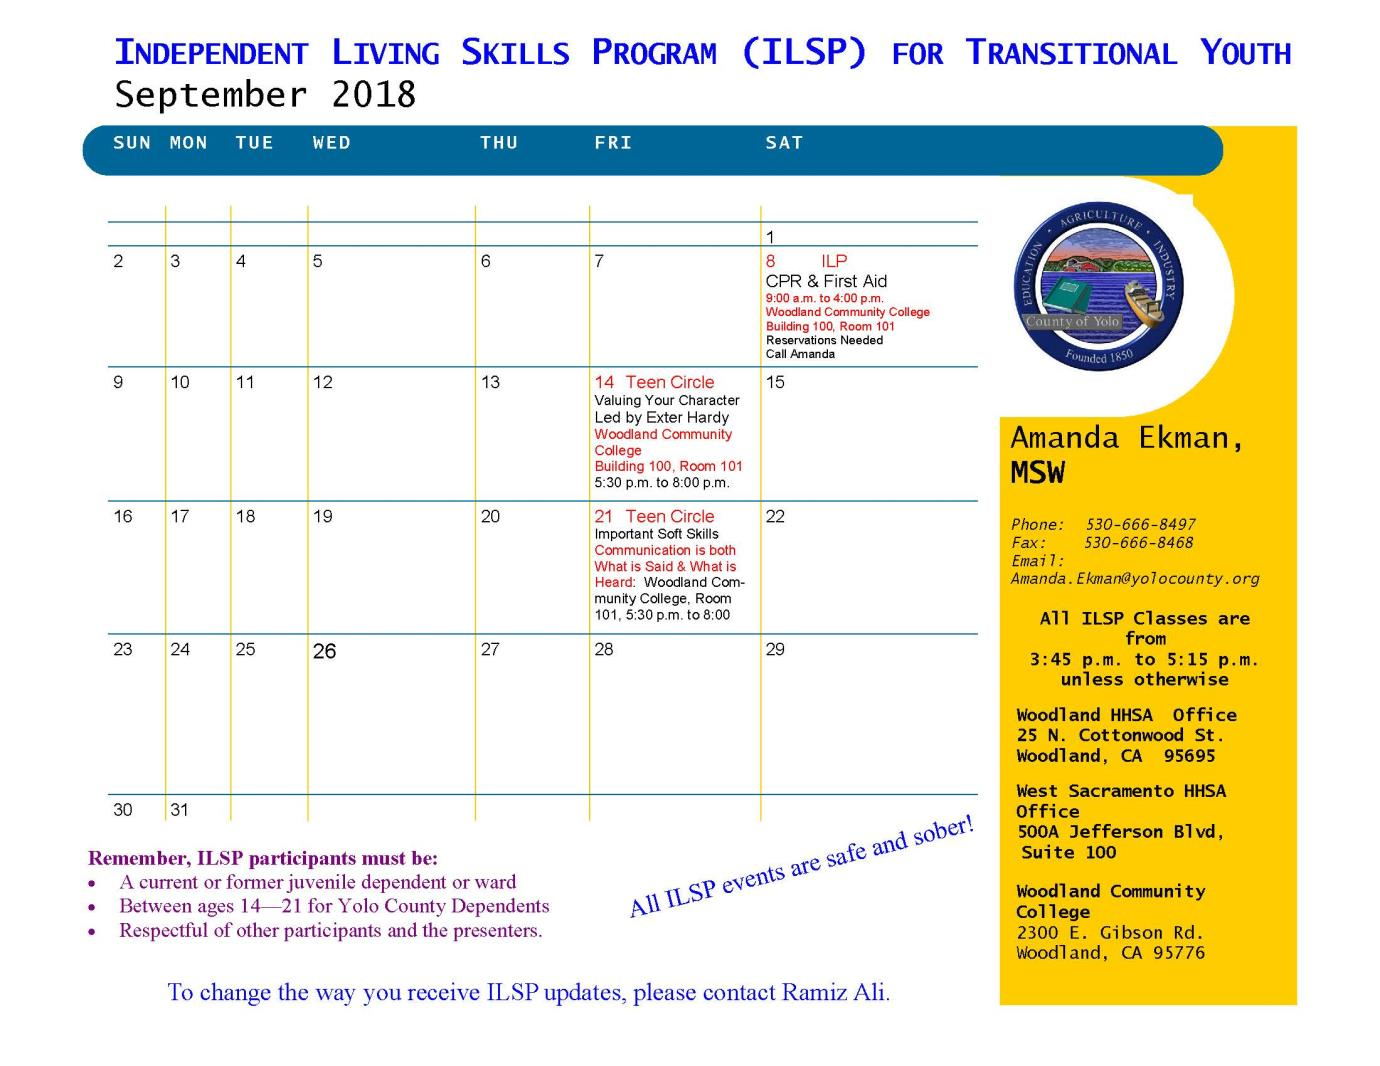 Independent Living Skills Program Yolo County